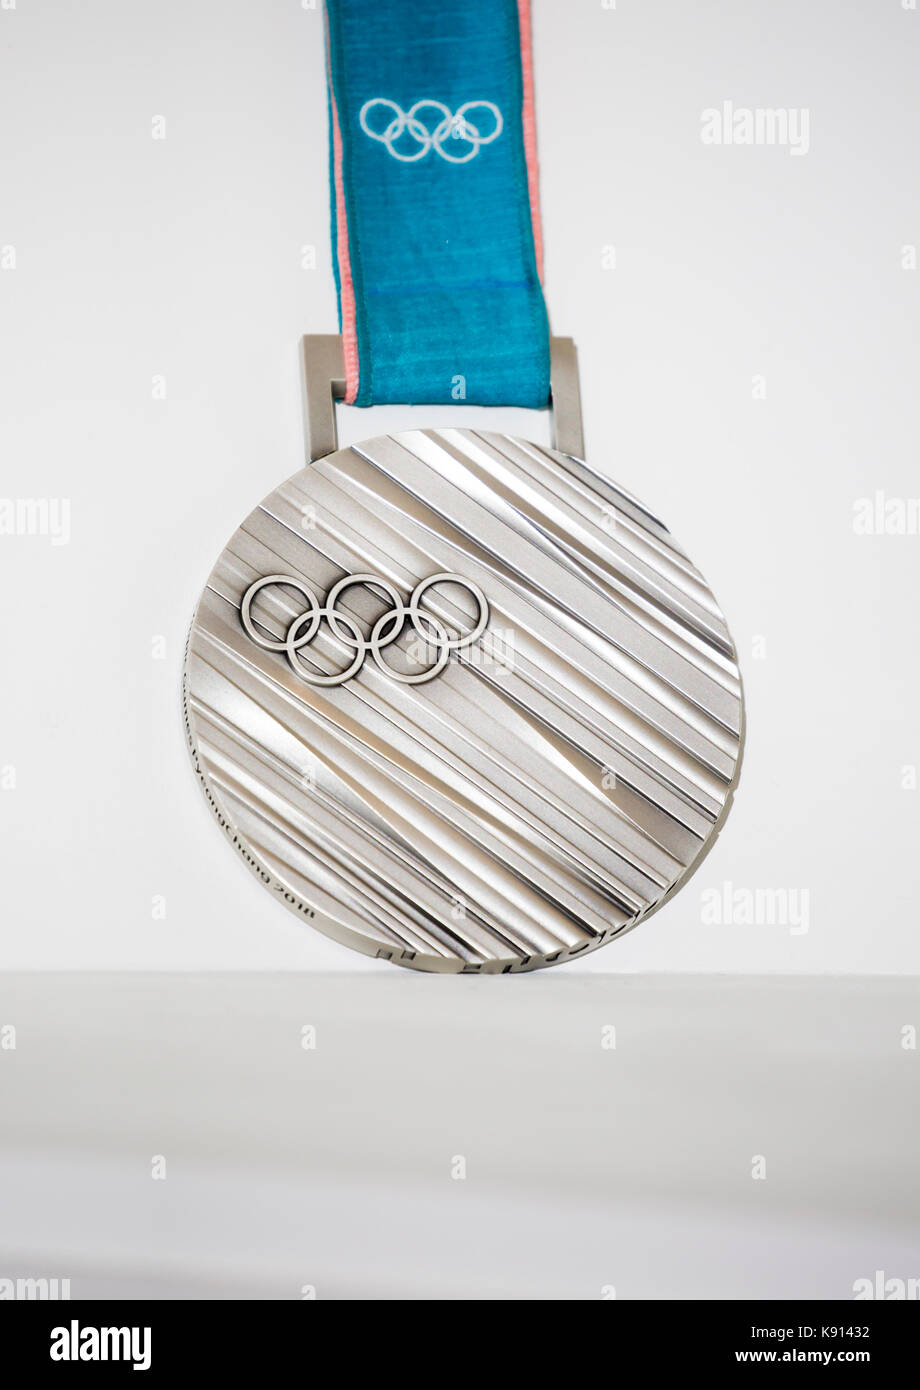 Olympia Medaille 2020